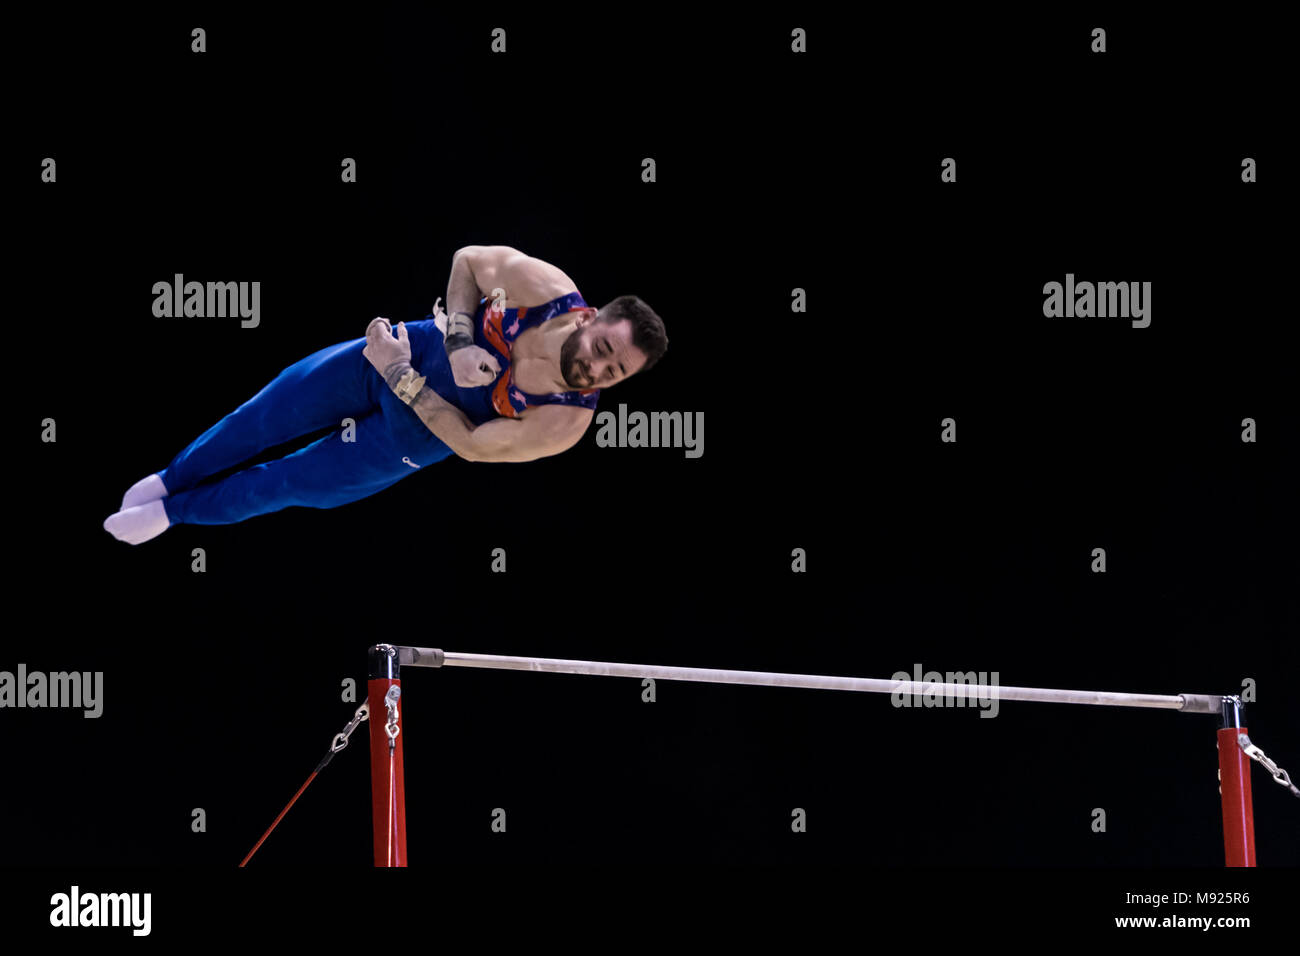 Birmingham, UK. 21st March, 2018. James Hall (GBR) competes on the Horizontal Bar during the 2018 FIG Gymnastics World Cup at Arena Birmingham on Wednesday, 21 March 2018. Birmingham England. Credit: Taka Wu/Alamy Live News - Stock Image